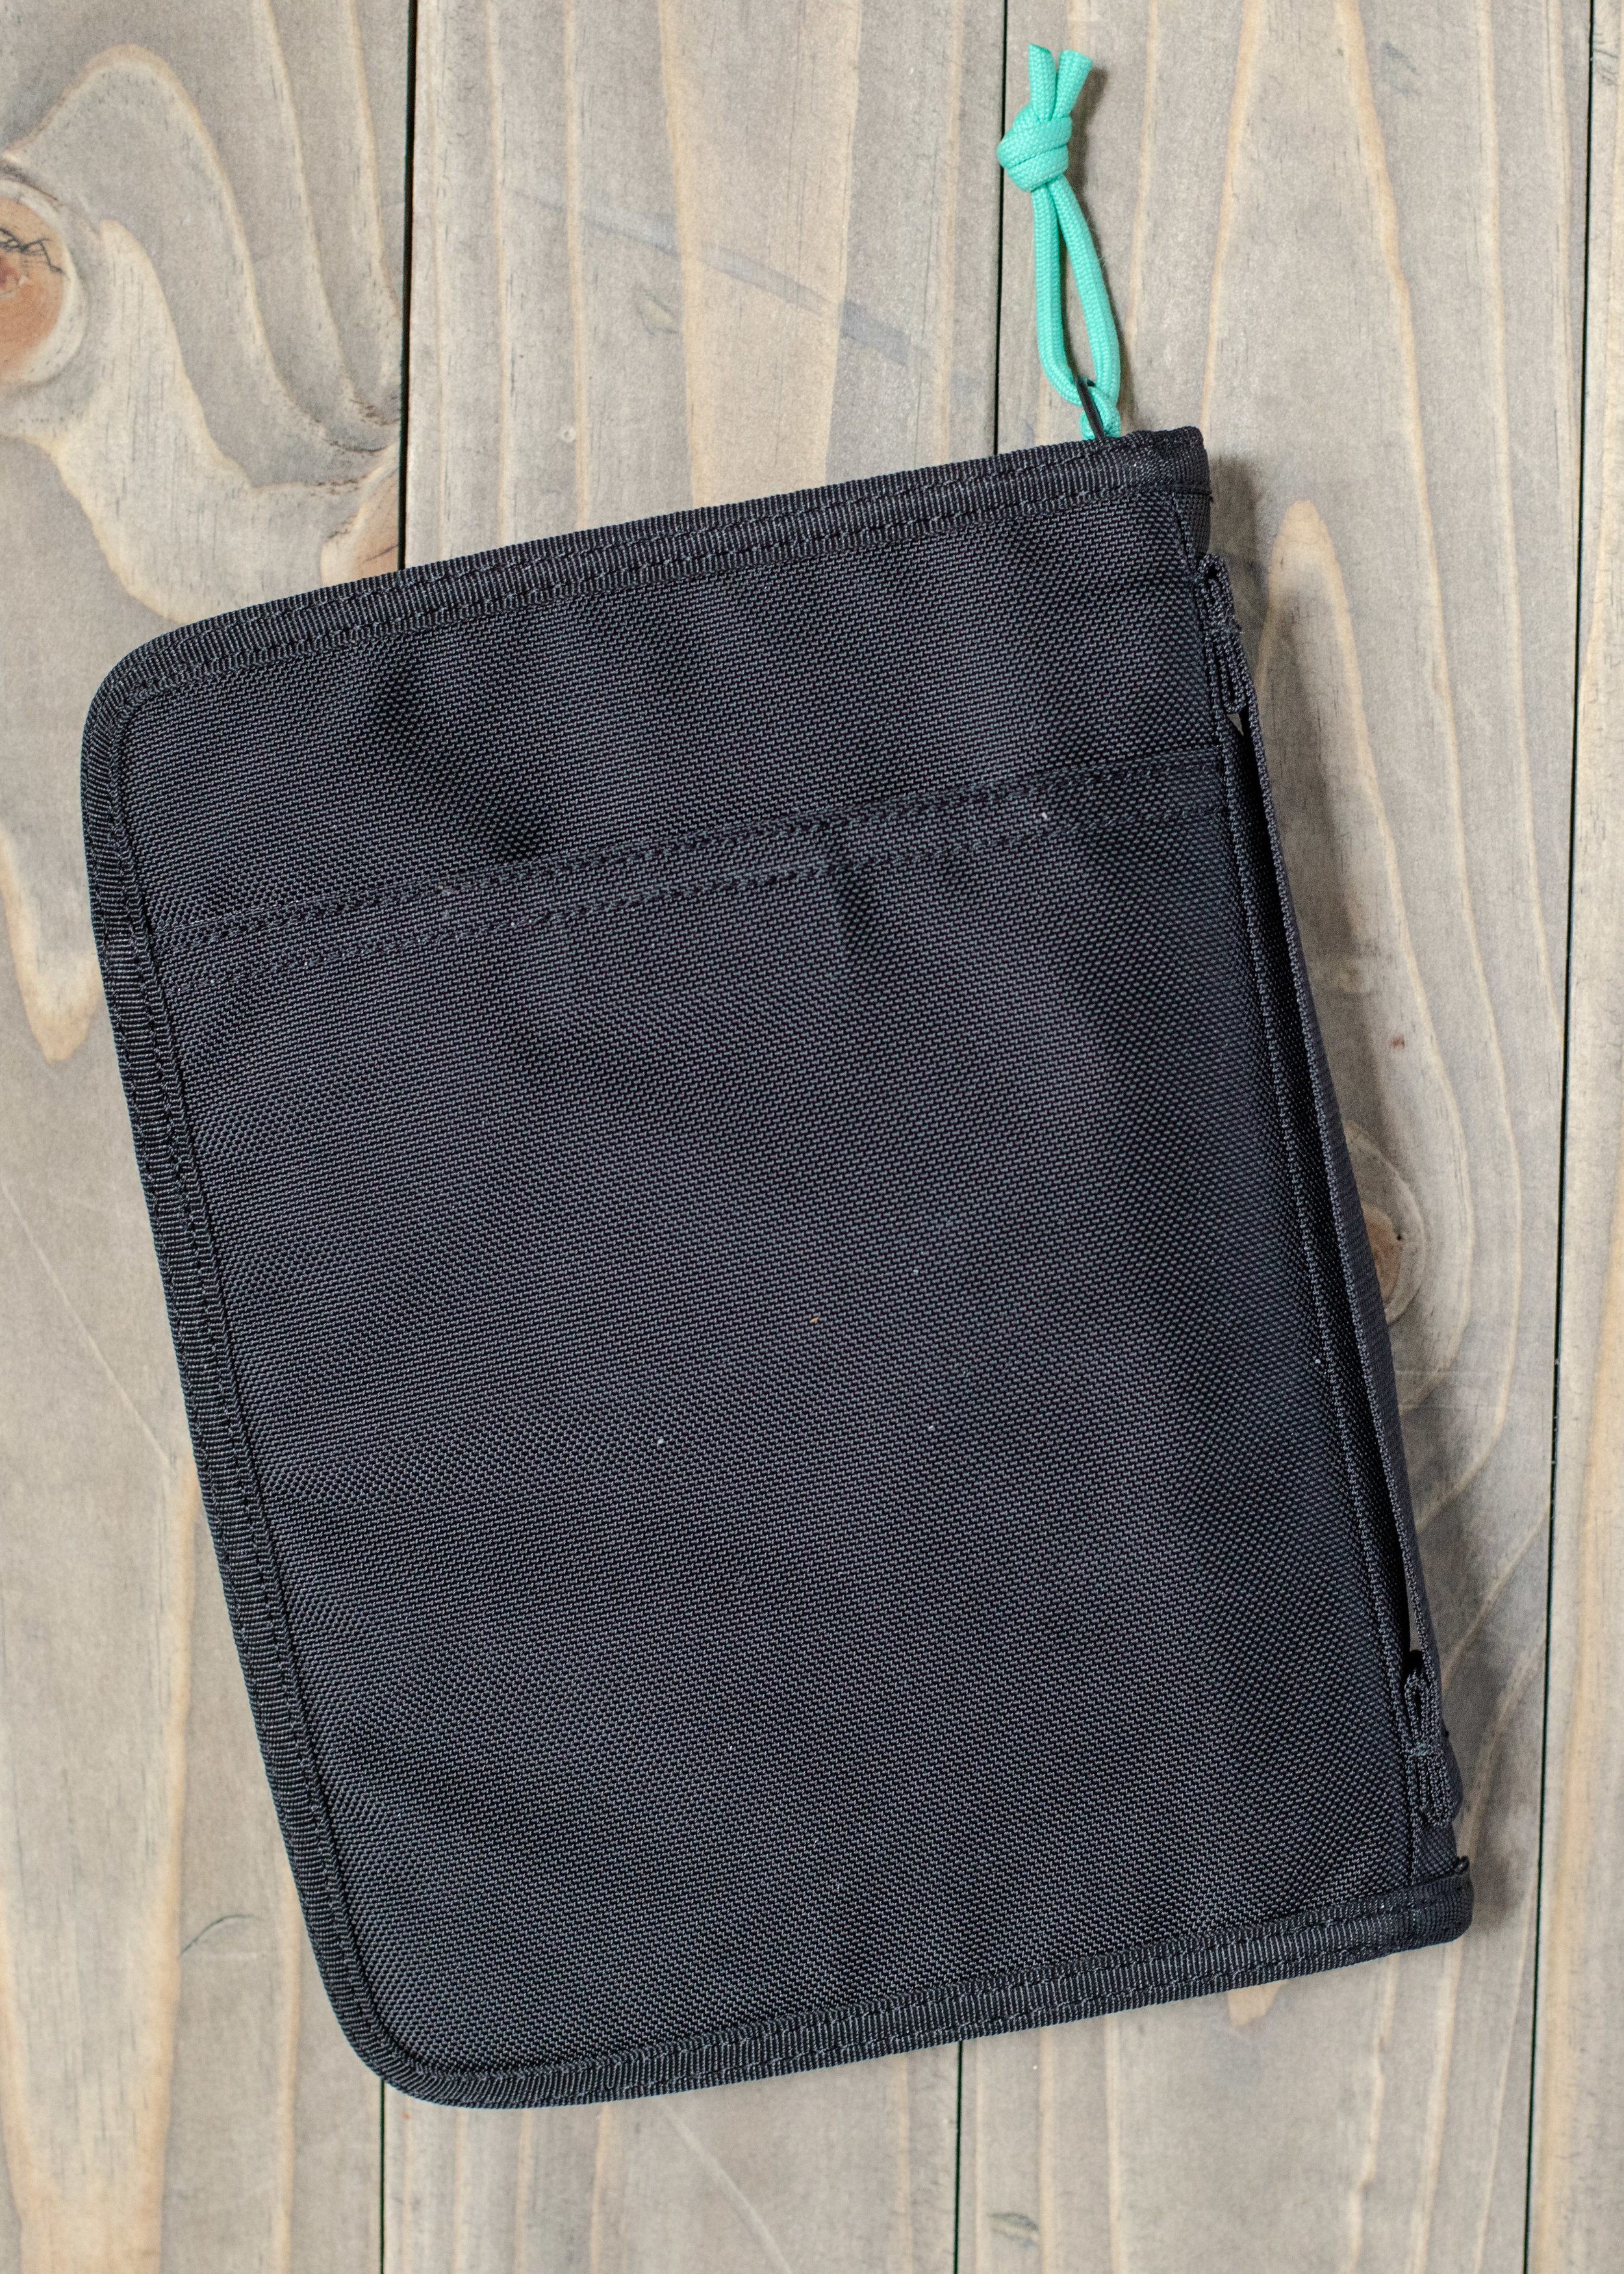 Details: - The cover fits the journal perfectly, and has a few pockets on the inside as well as one on the back.